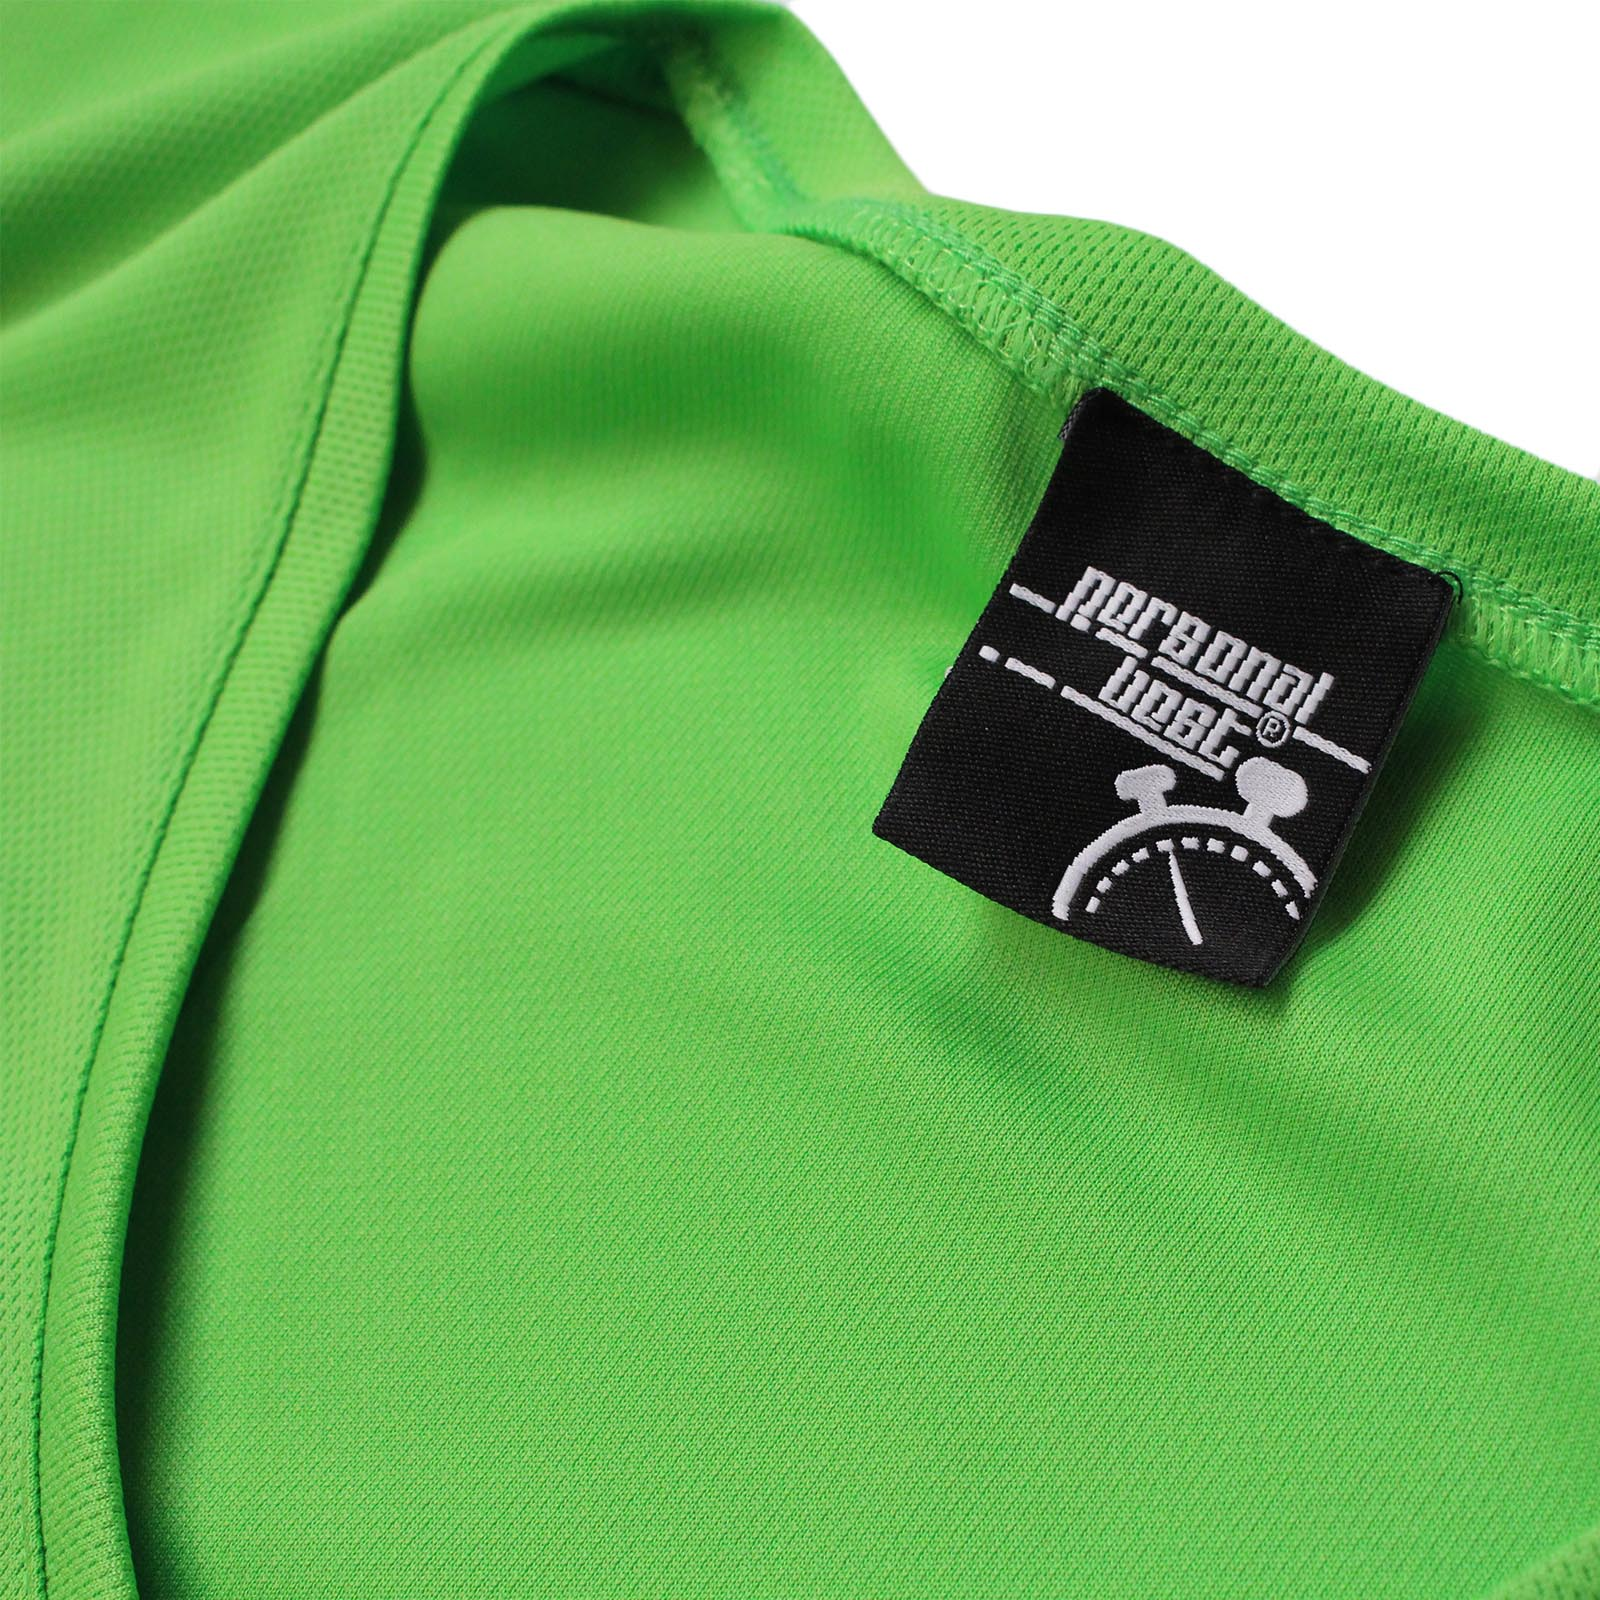 PB Dry Fit Breathable Sport V Born To Run Forced To Work NECK T-SHIRT